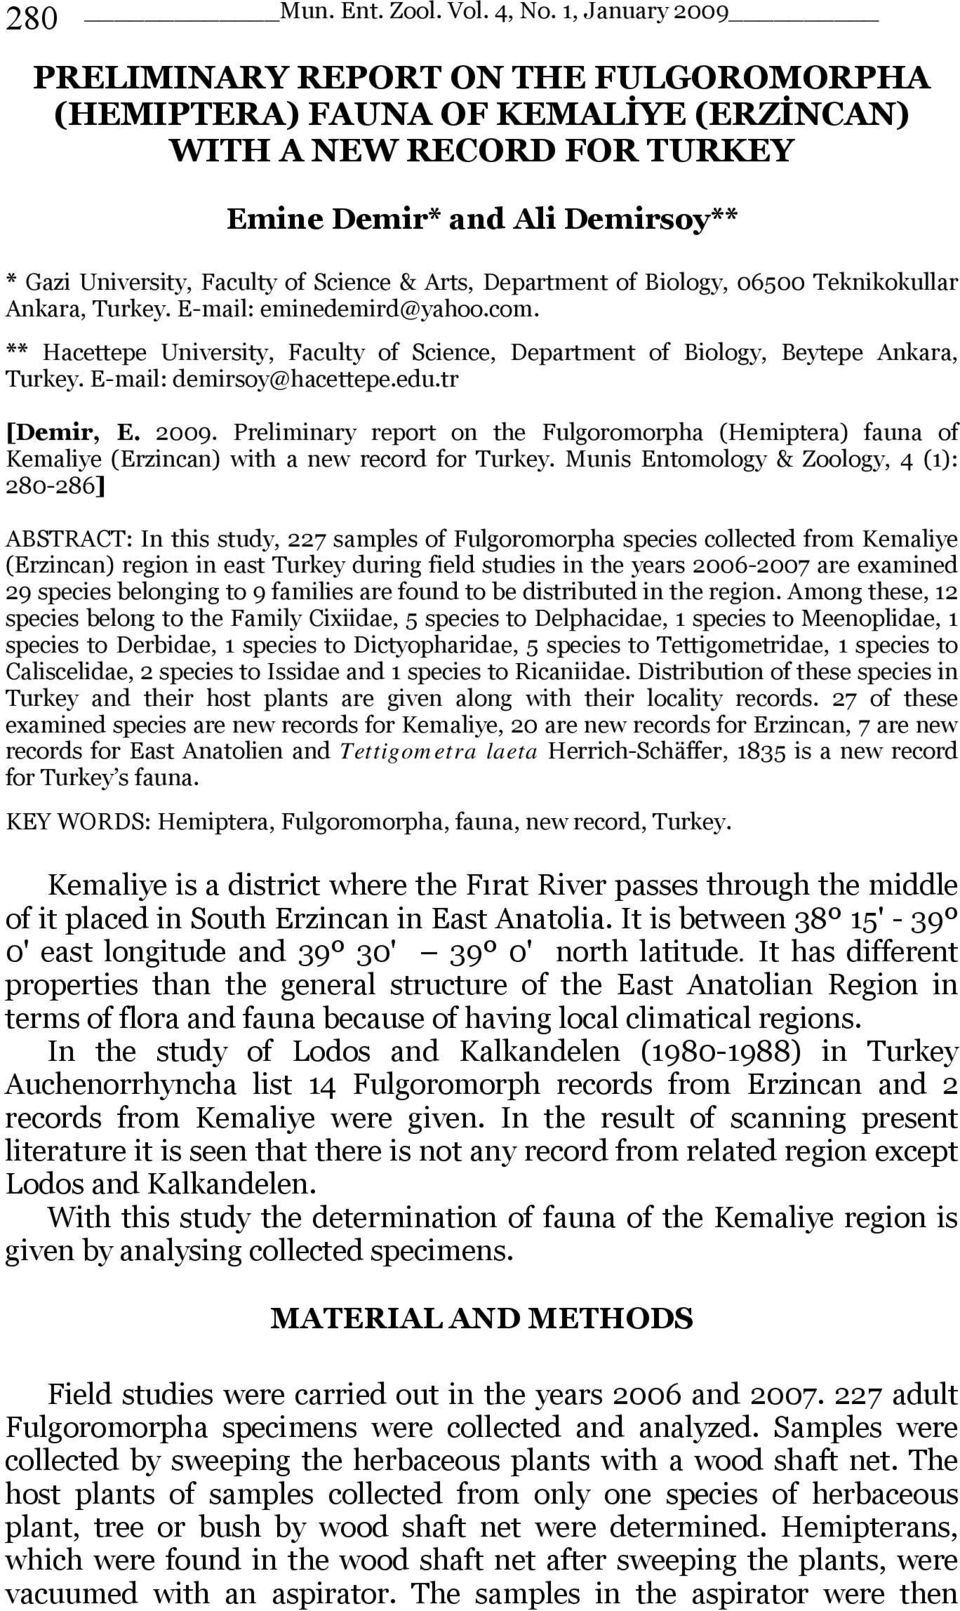 E-mail: demirsoy@hacettepe.edu.tr [Demir, E. 2009. Preliminary report on the Fulgoromorpha (Hemiptera) fauna of Kemaliye (Erzincan) with a new record for Turkey.